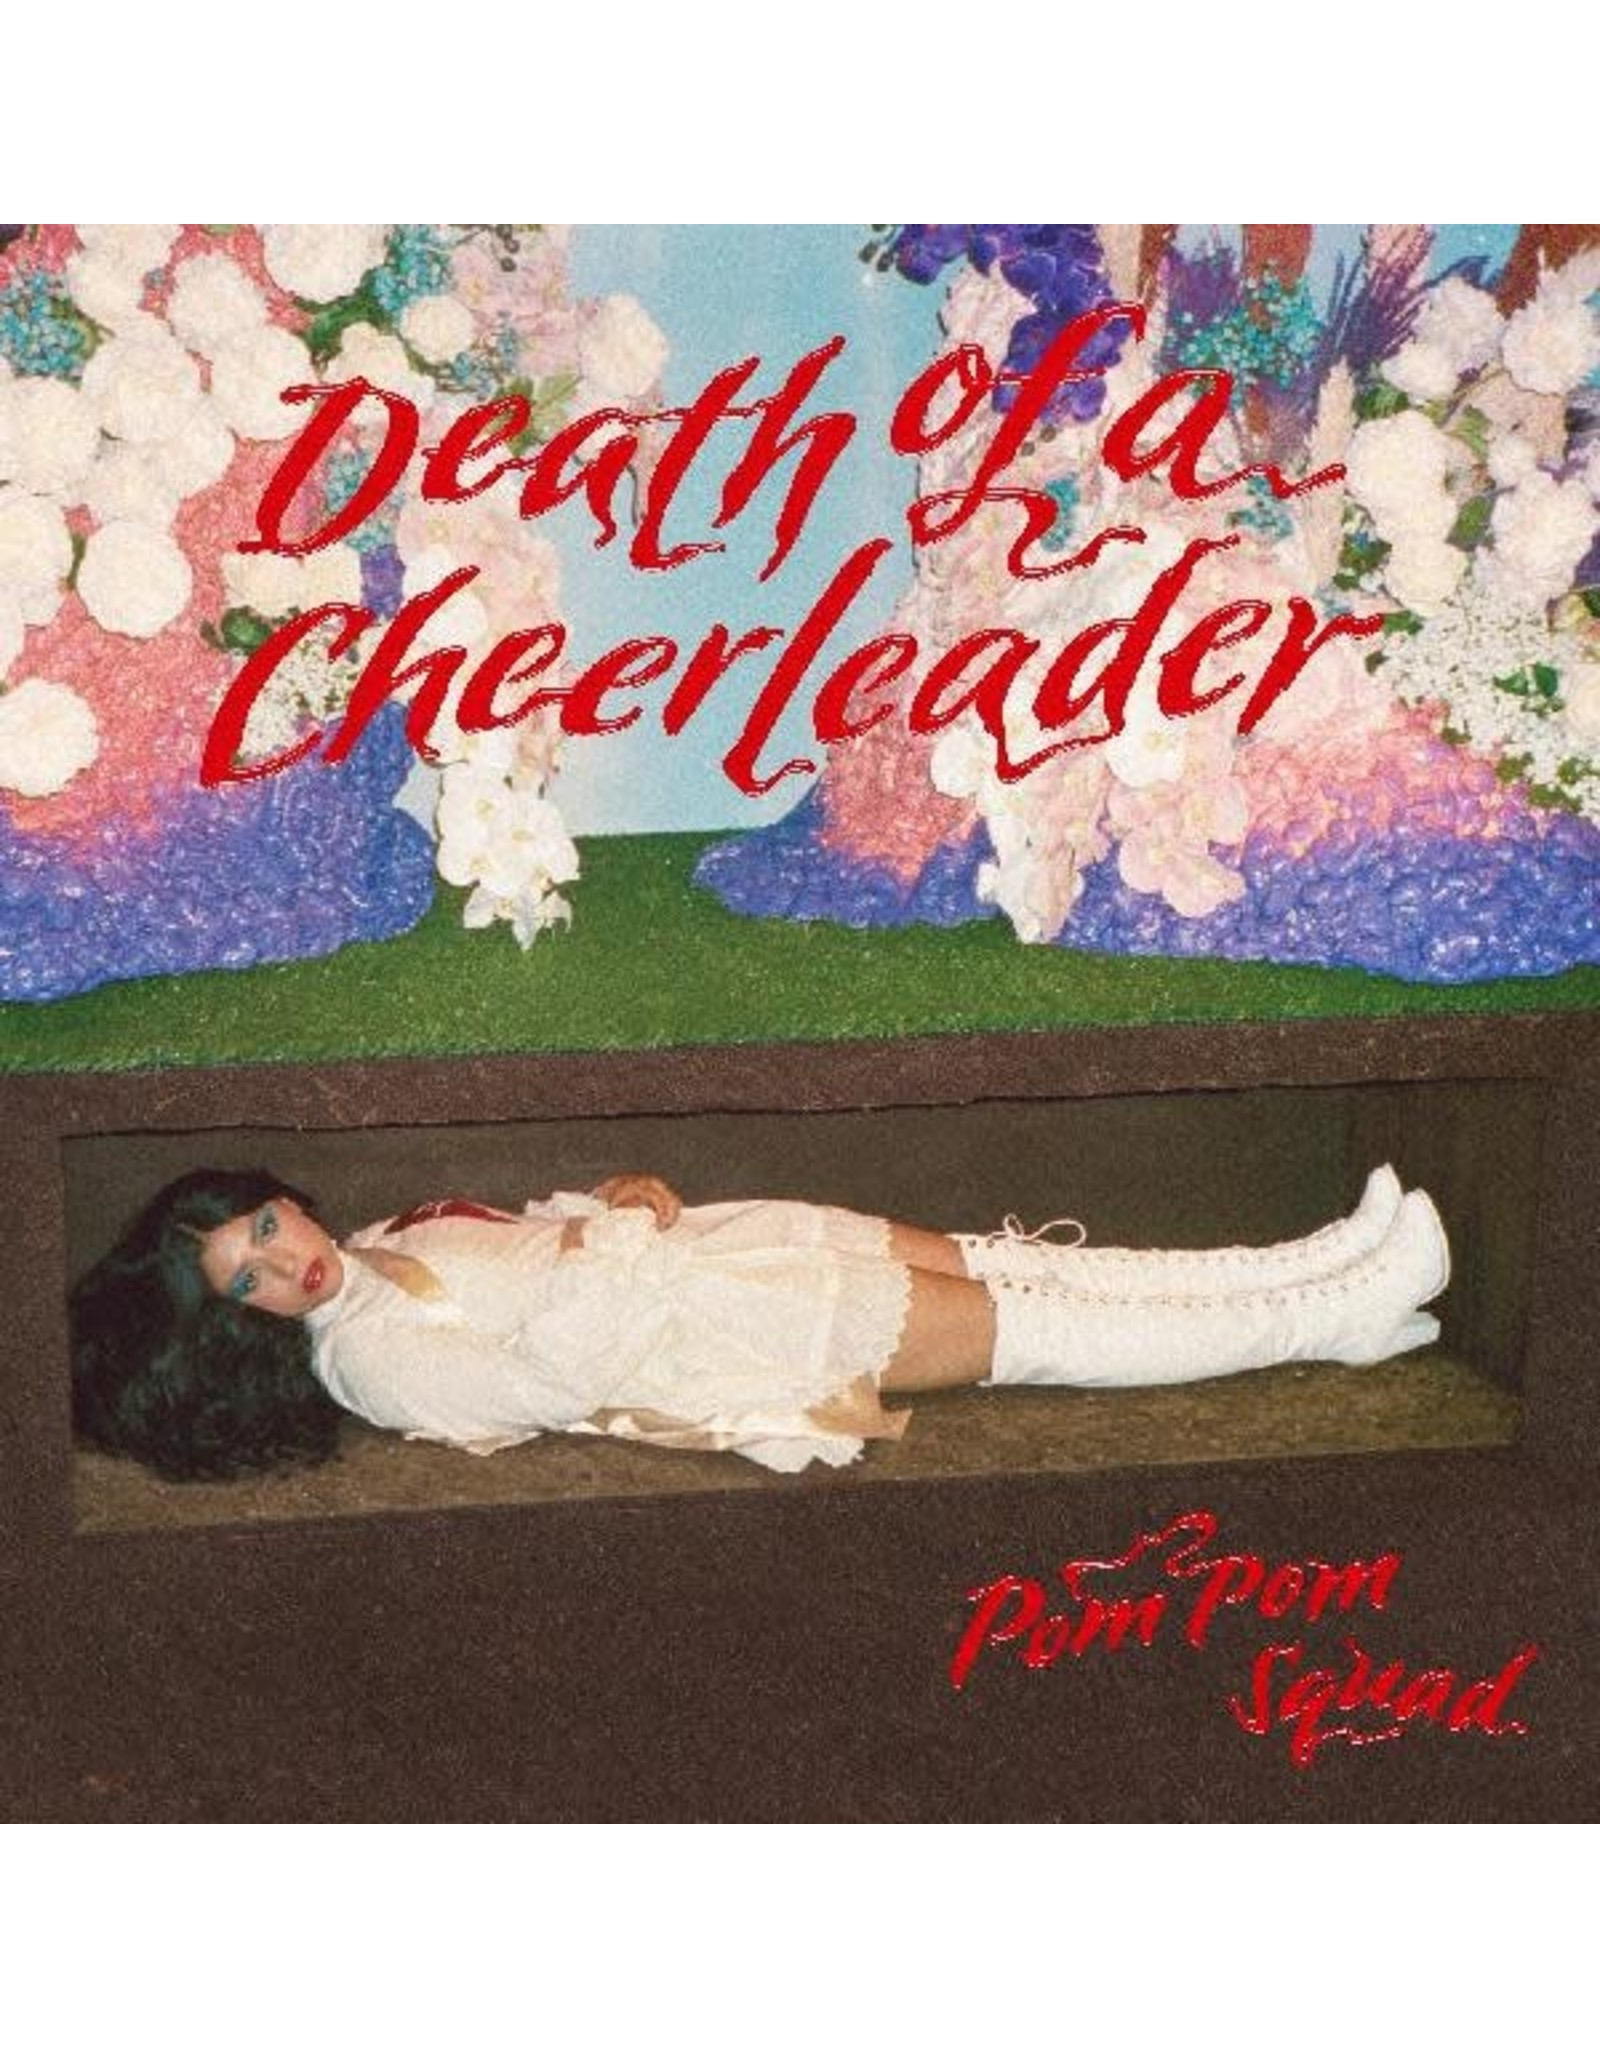 New Vinyl Pom Pom Squad - Death Of A Cheerleader (Colored) LP